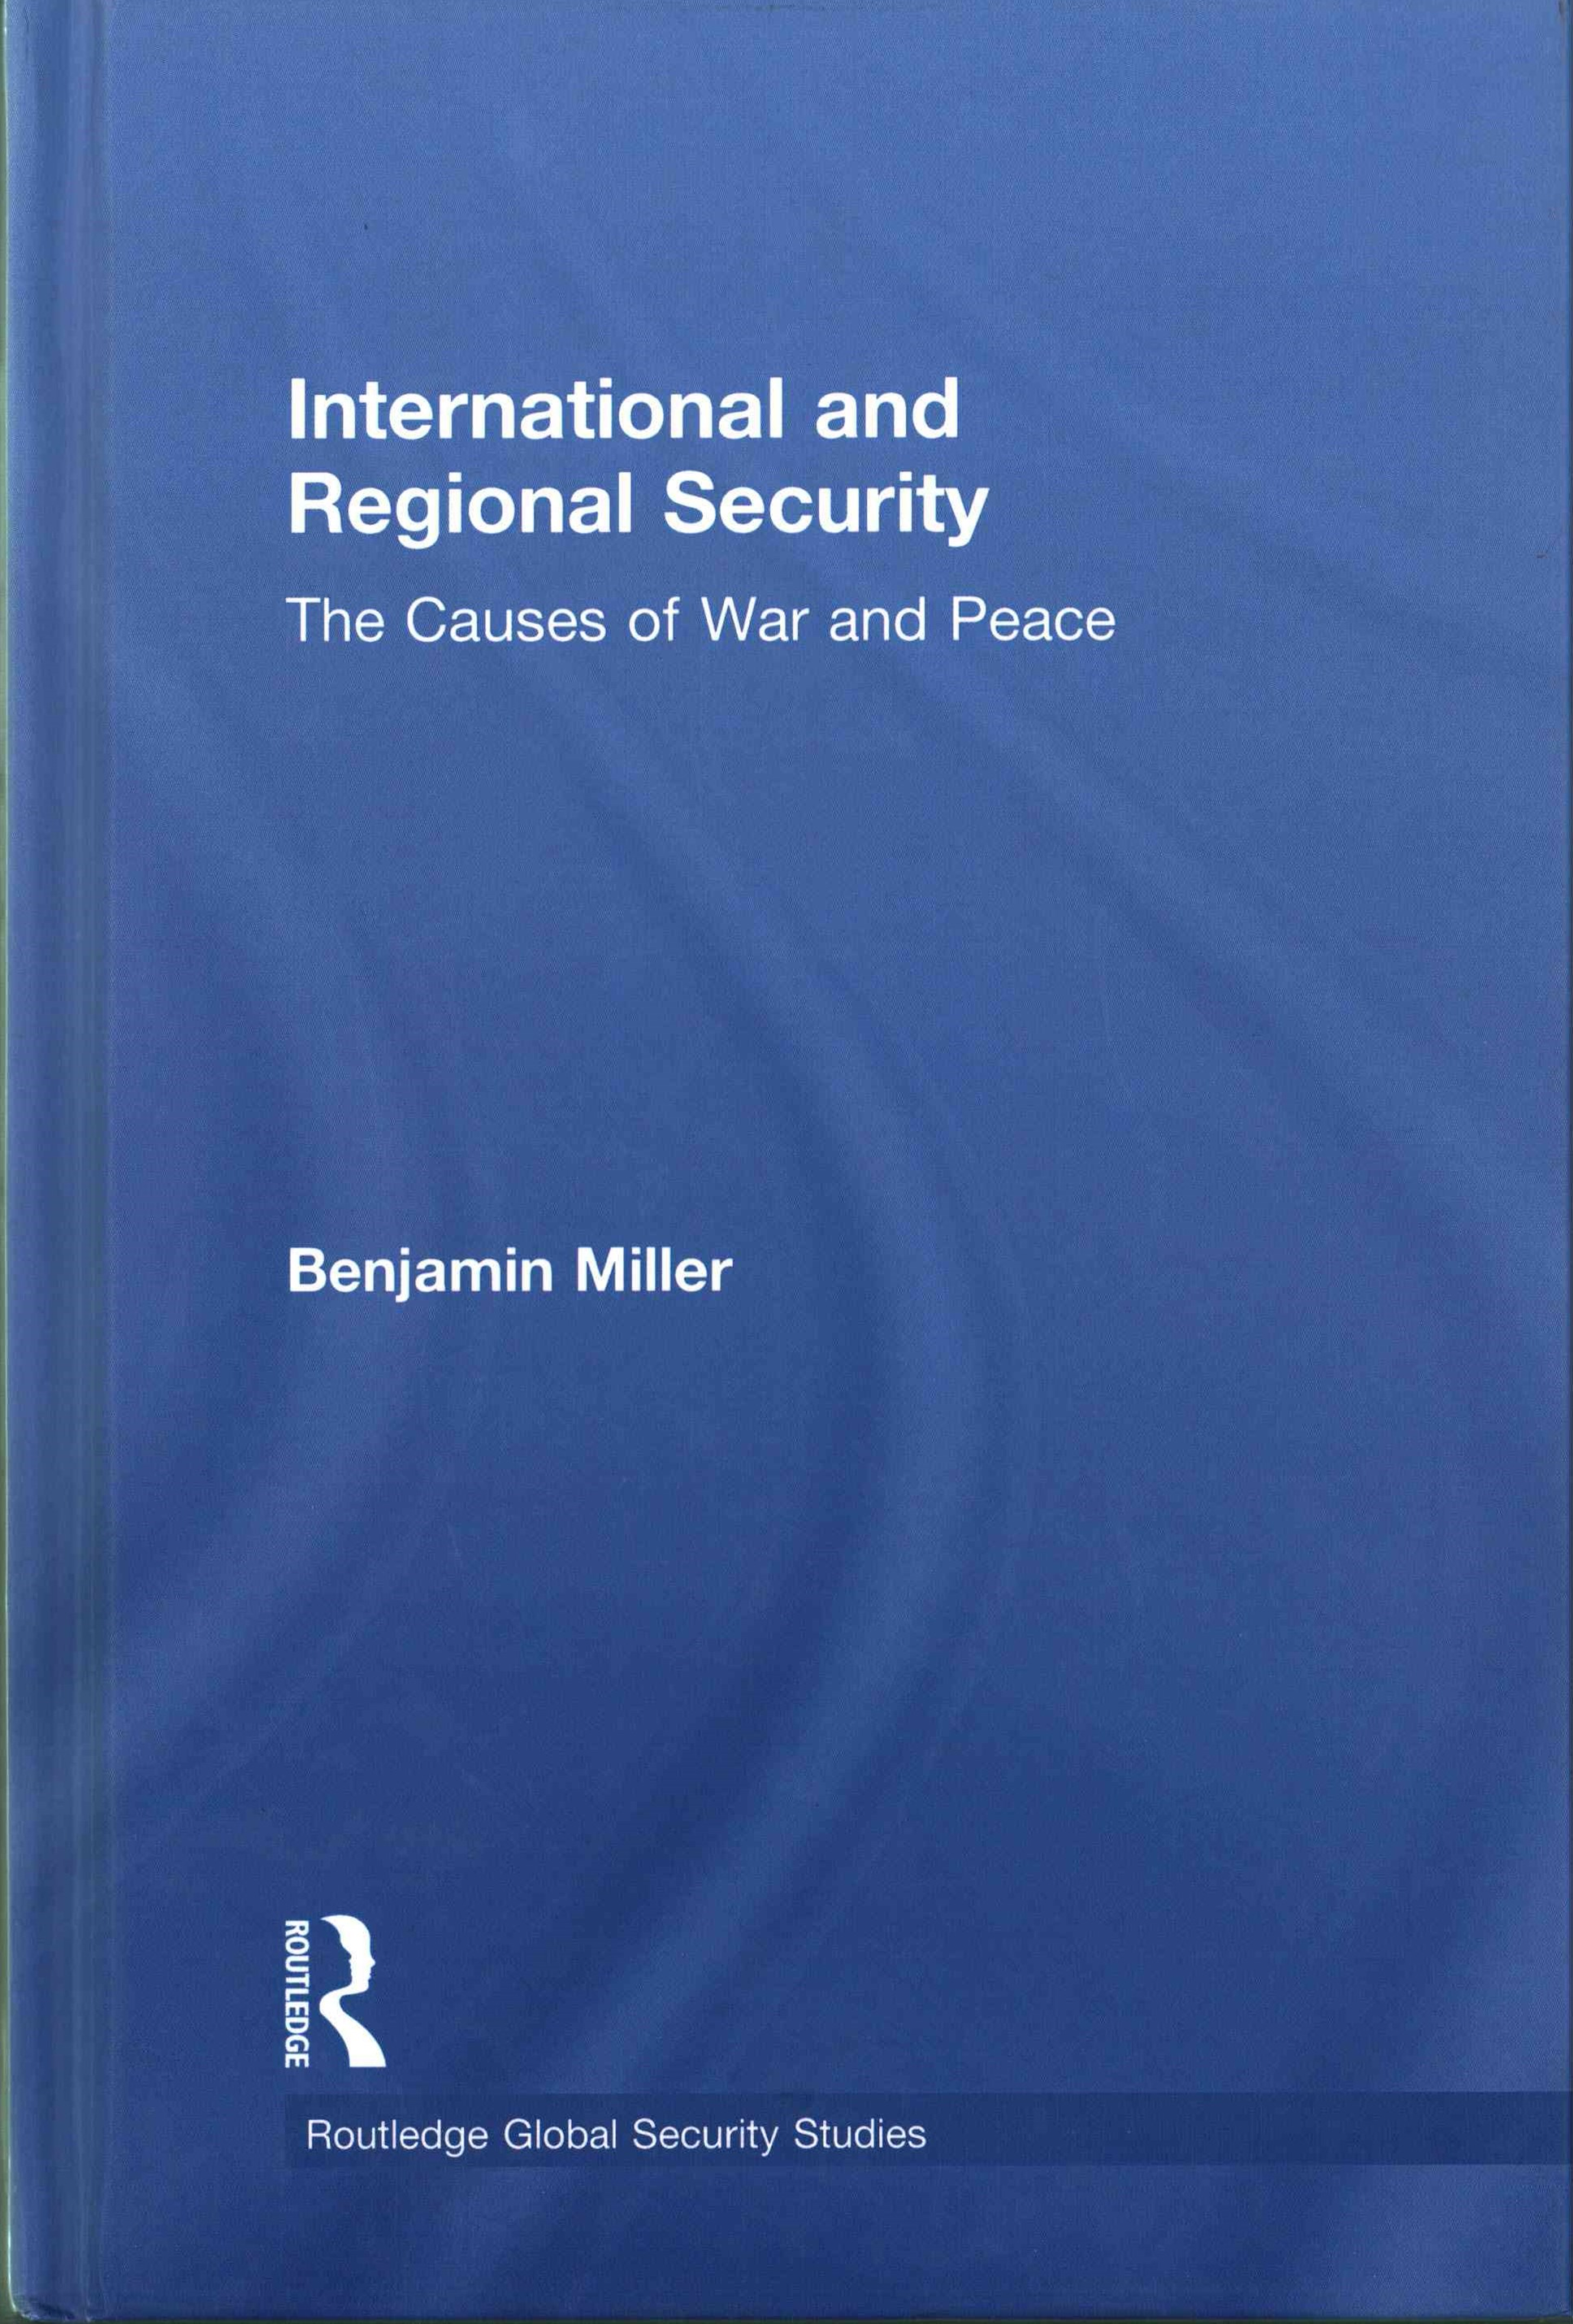 International and Regional Security